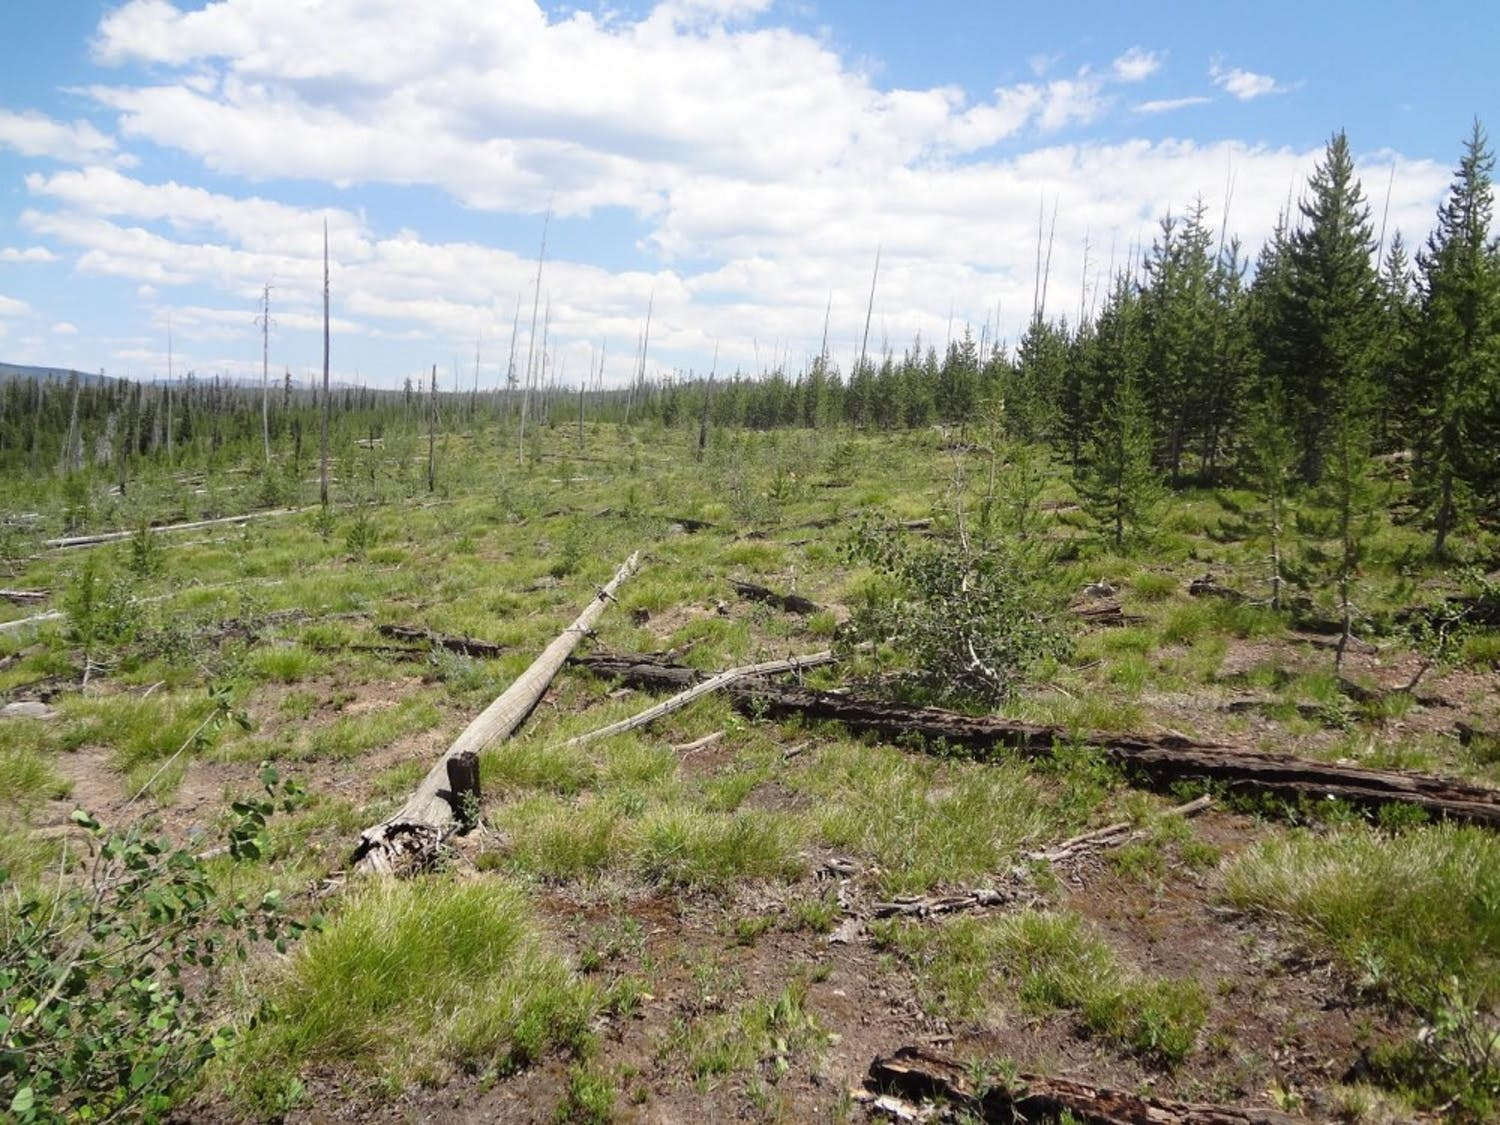 A regenerating Yellowstone forest, after the 1988 and 2000 fires. This demonstrates a loss of forest resilience.